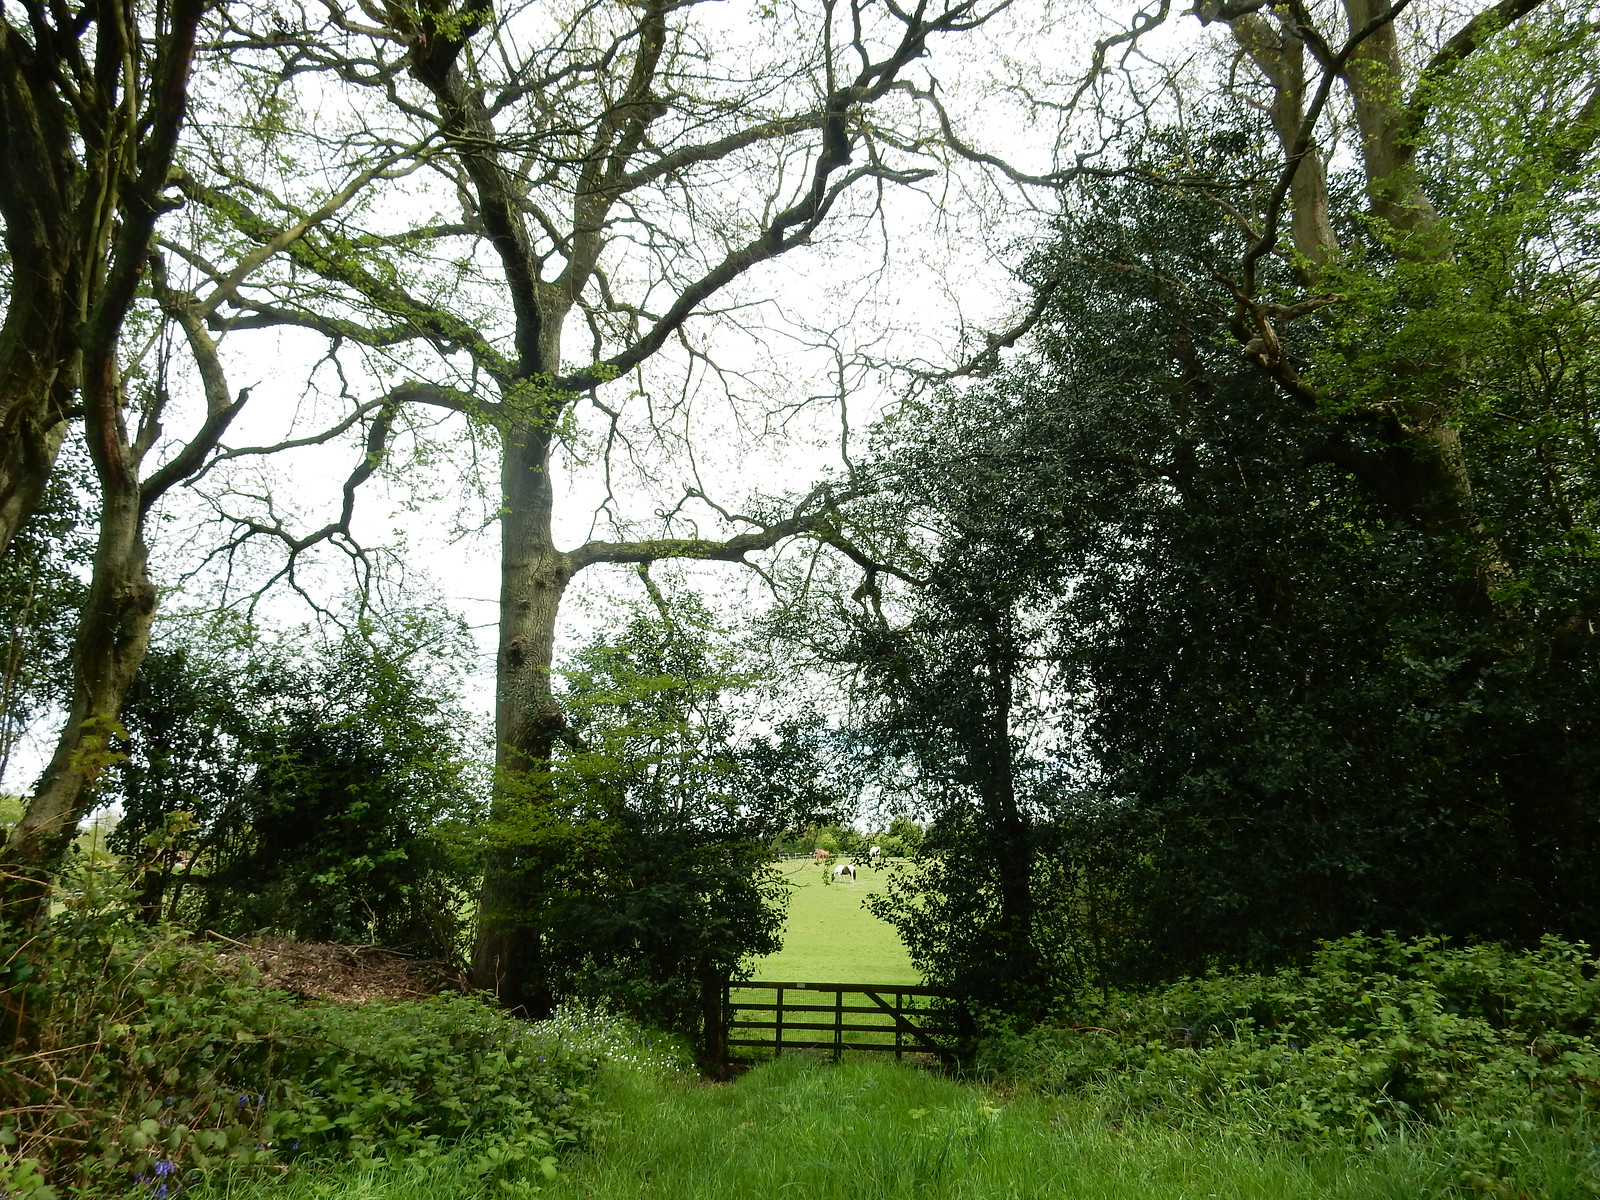 Gate Whyteleafe to Woldingham